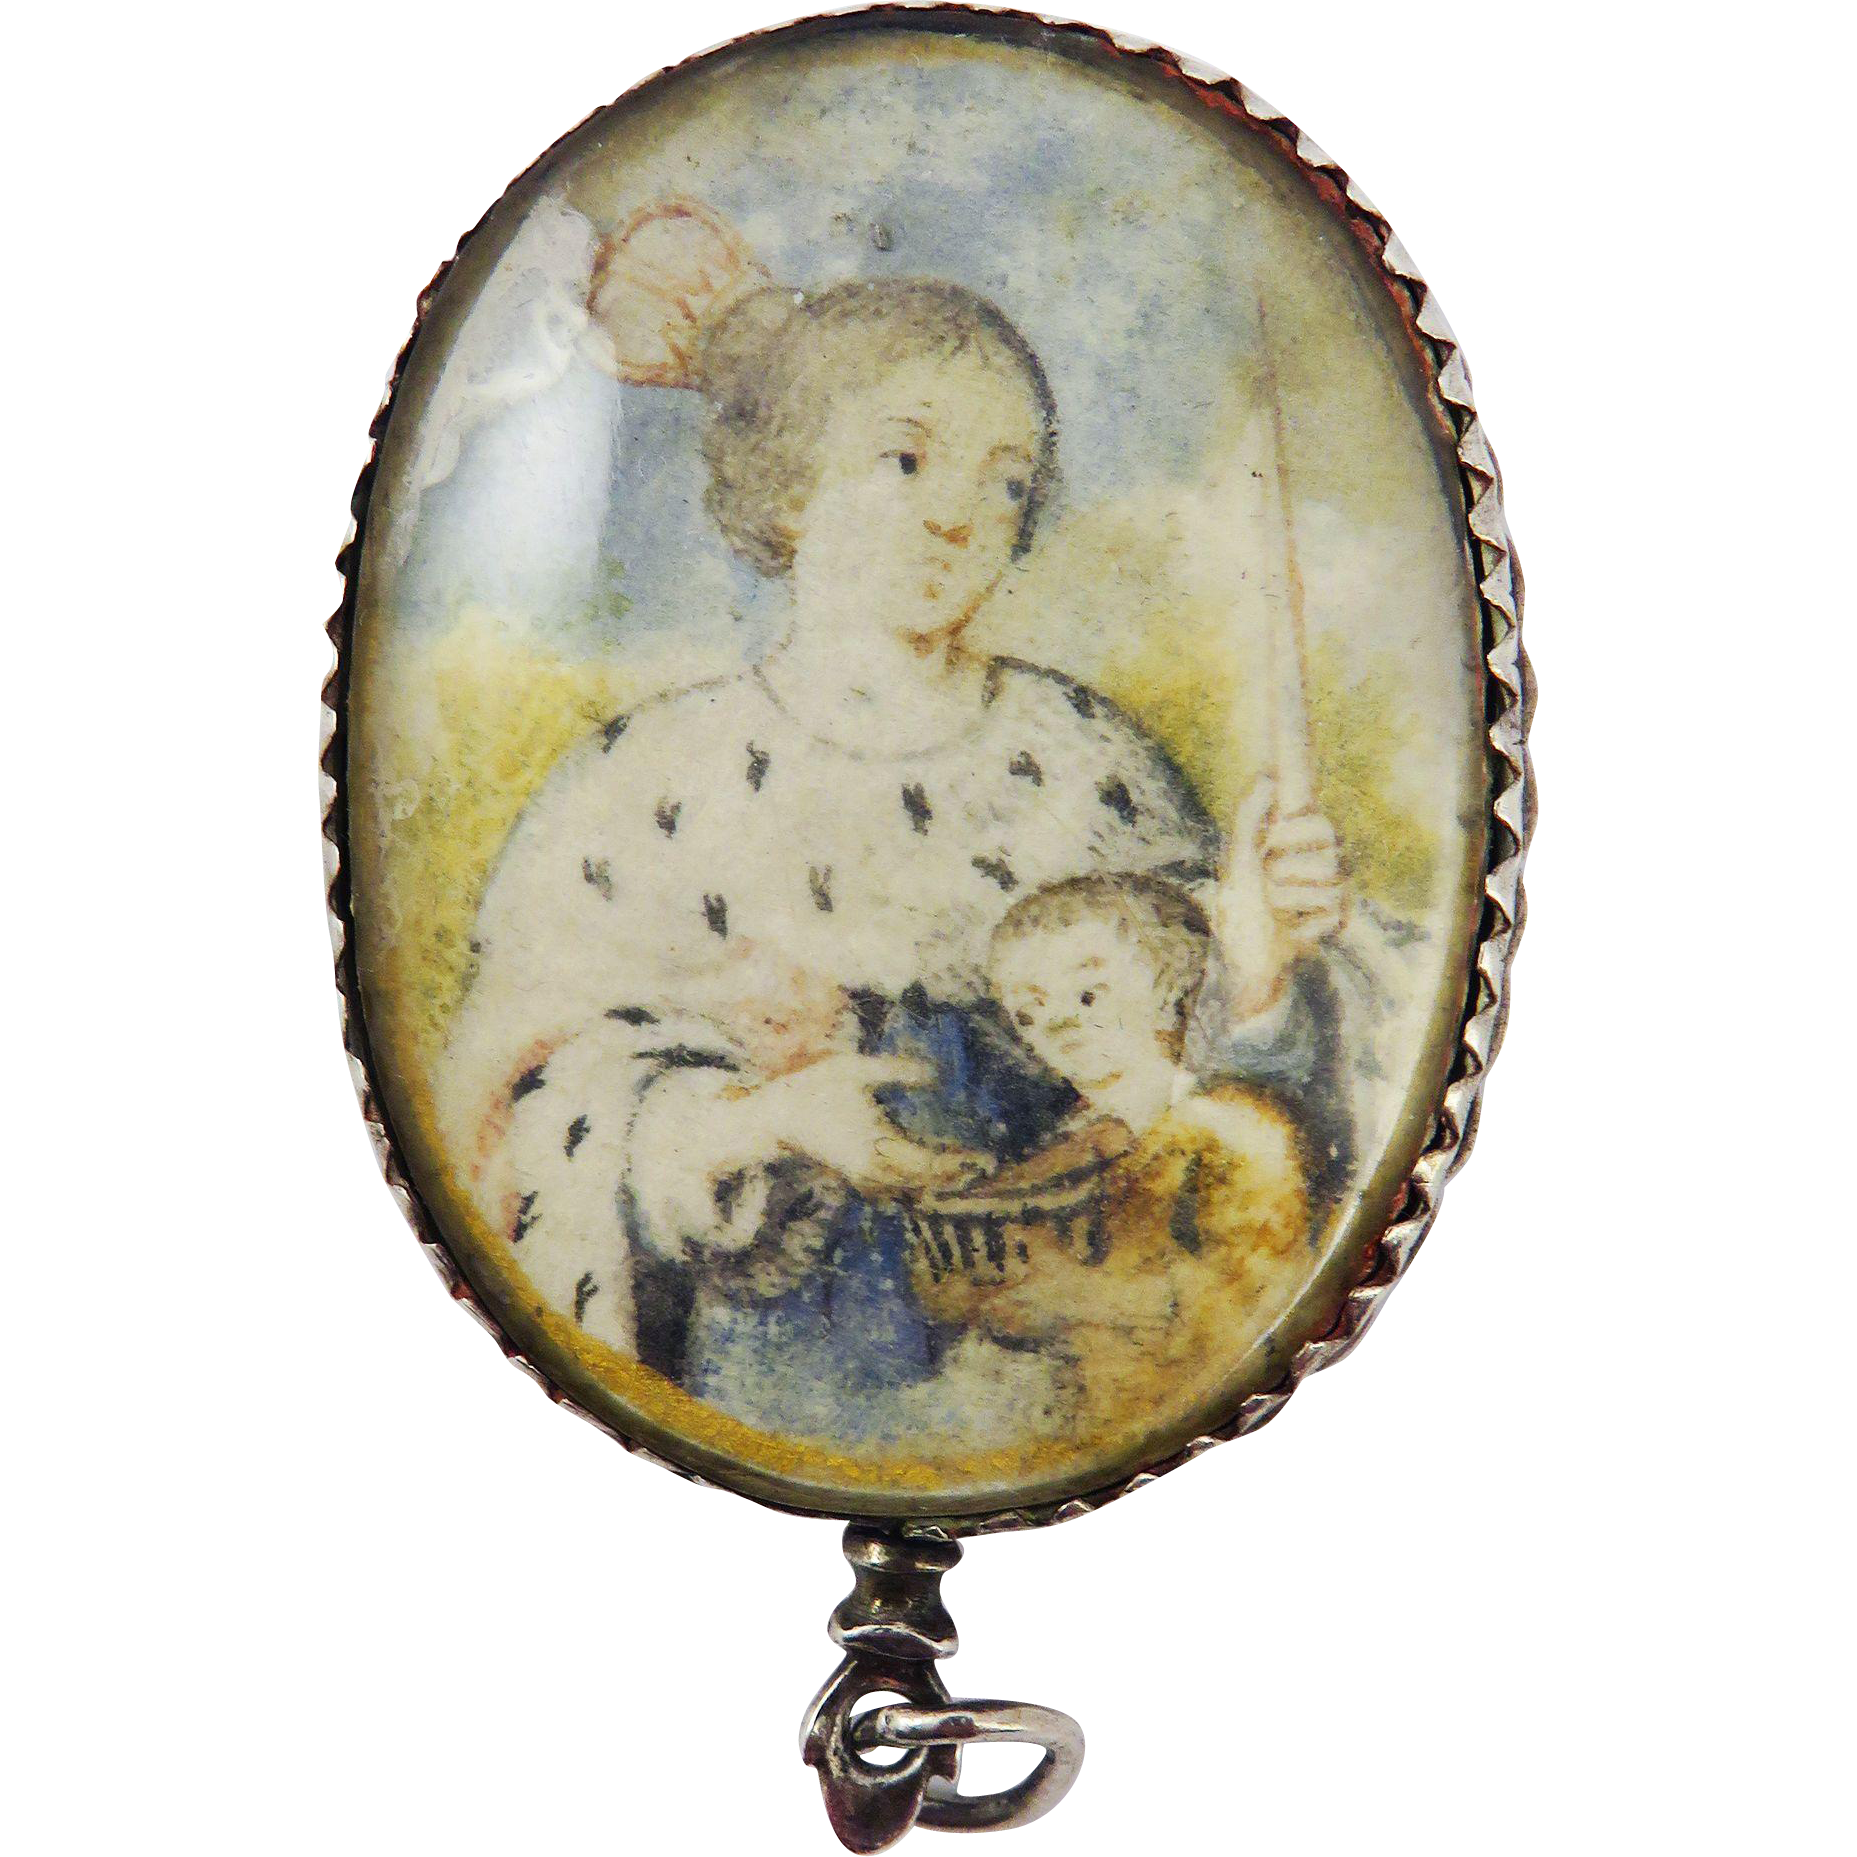 MUSEUM-WORTHY French Renaissance Rock Crystal/Vellum/Silver Double-Sided Reliquary Pendant w/5 Relics, c.1350/1600!